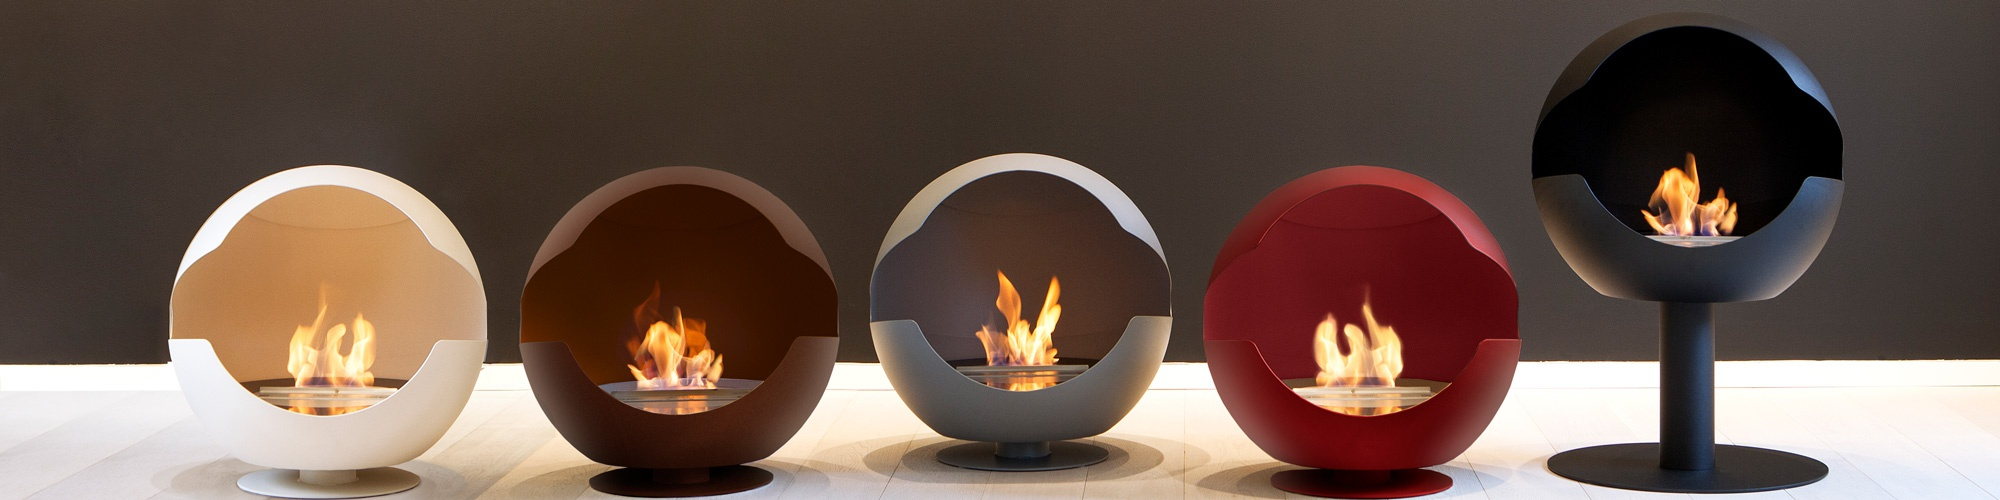 Vauni Bio Fireplaces From A Swedish Producer Cupola And